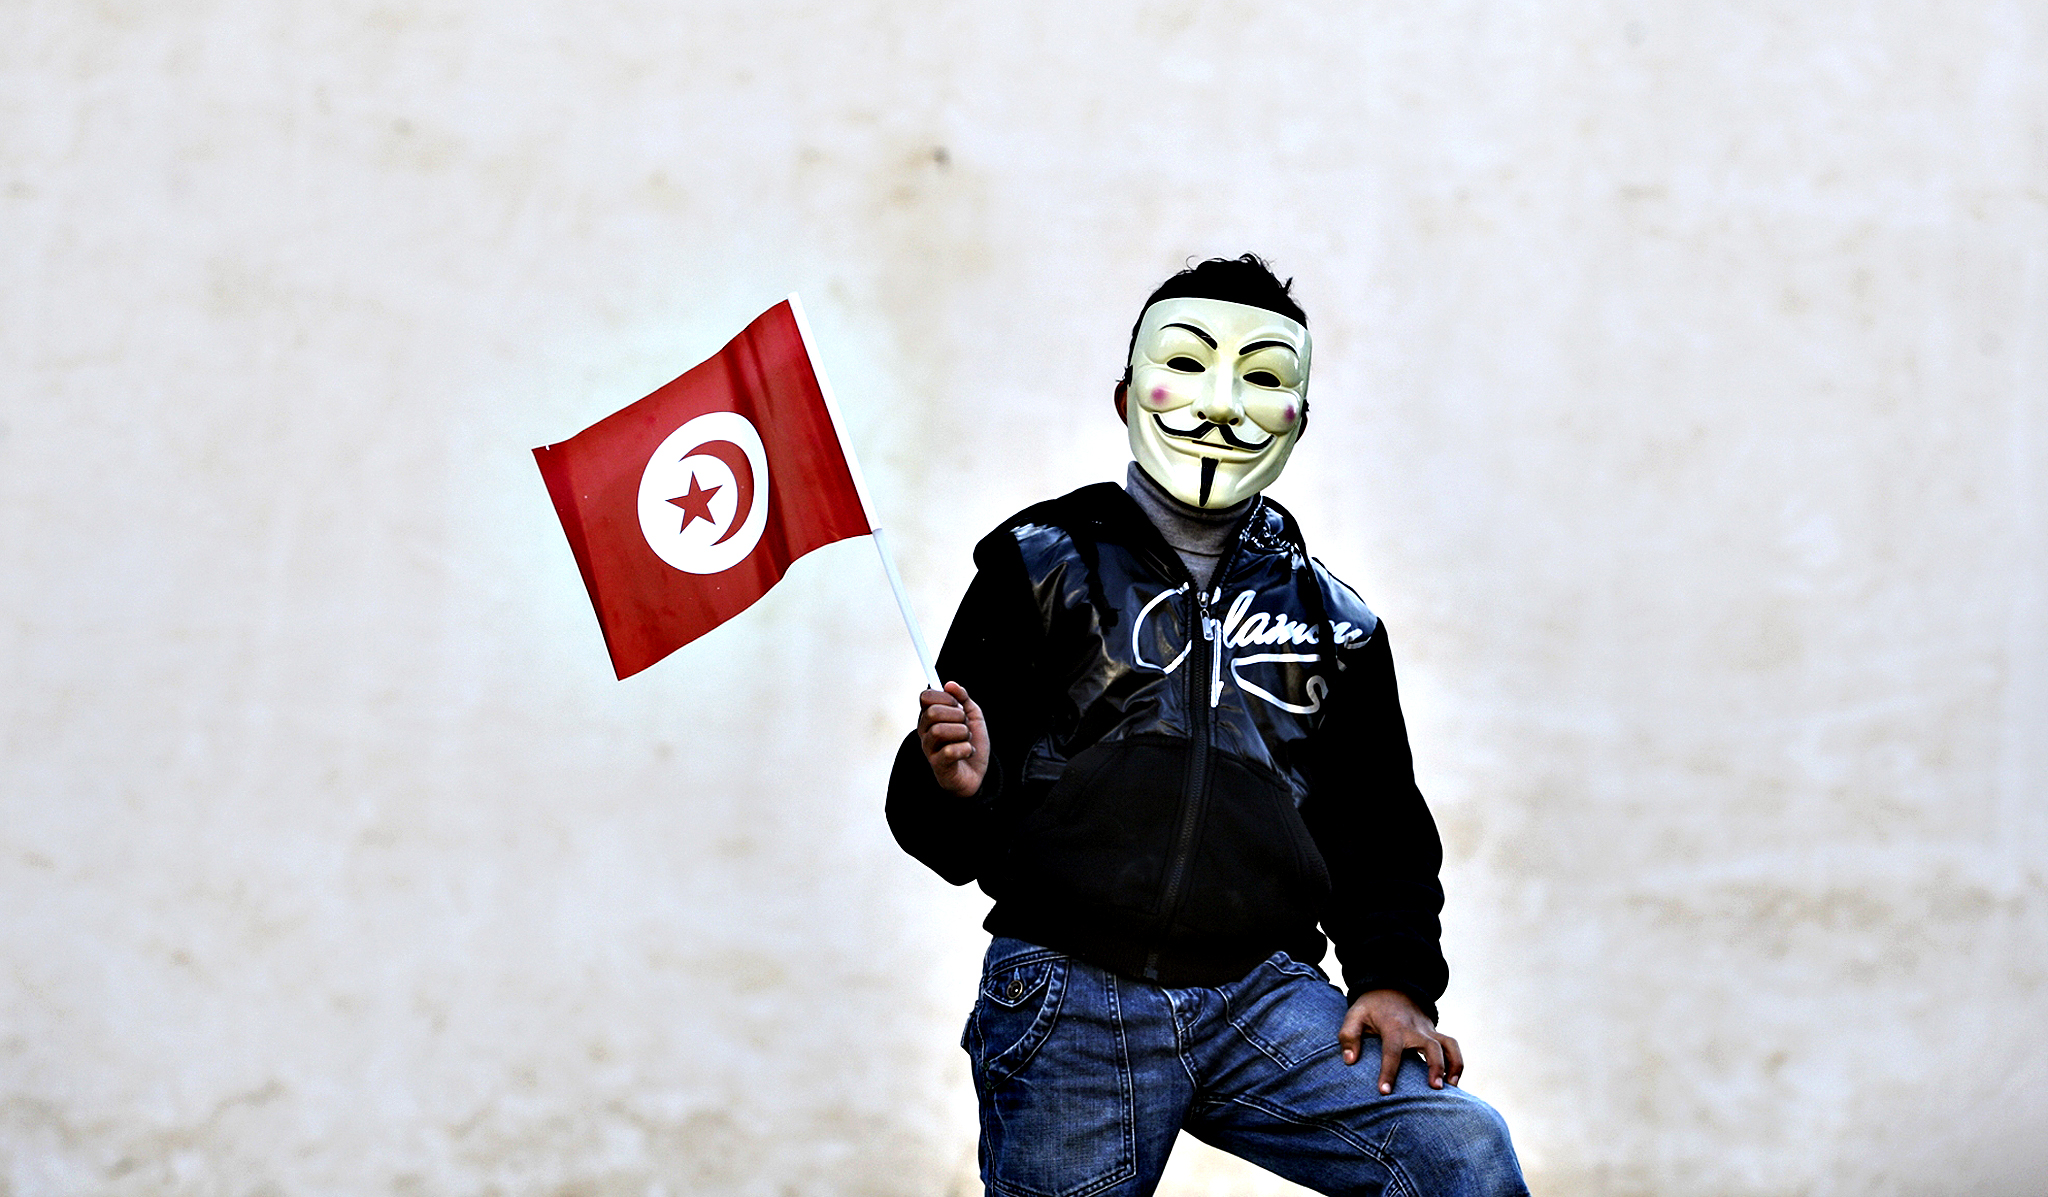 A civilian wearing a mask holds a Tunisian flag in Sidi Bouzid, central Tunisia, Tuesday, Dec. 17, 2013 to mark the third anniversary of the Tunisian uprising. Several political groups gather at the square where Mohamed Bouazizi's self-immolation on Dec. 17, 2010 triggered mass protests against social marginalisation and government corruption in Tunisia.